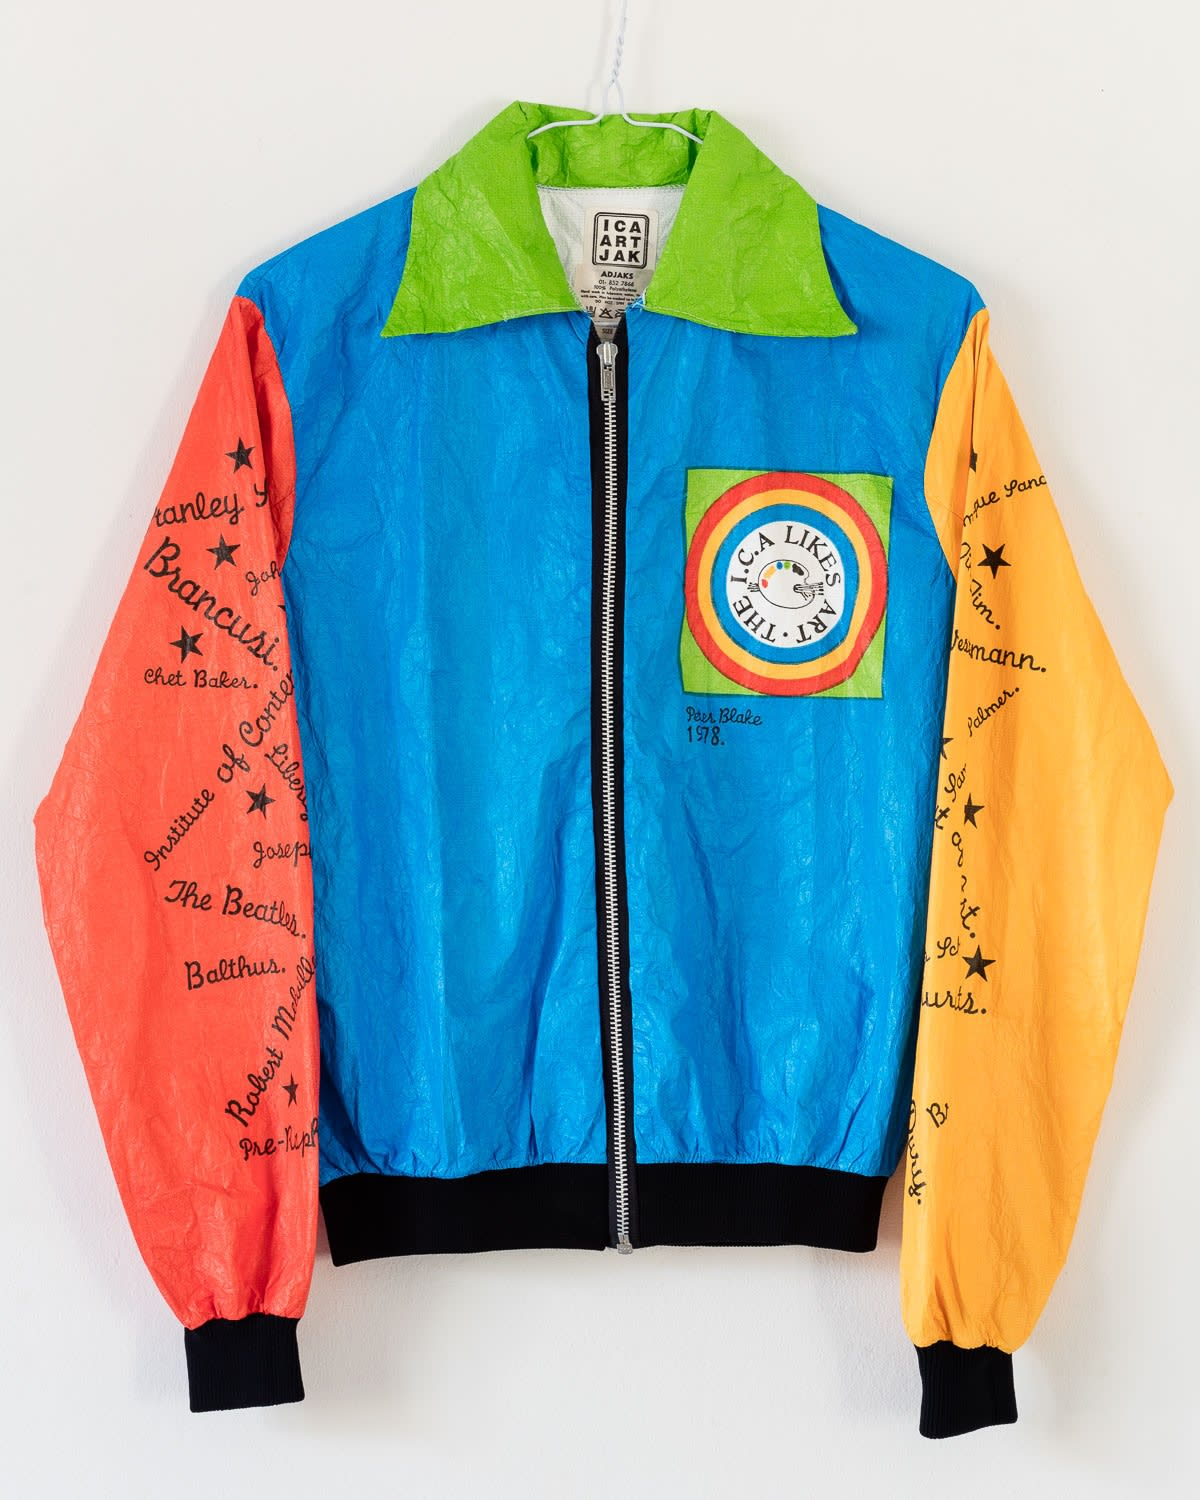 Peter Blake ICA Art Jak, 1978 Polythene bomber jacket Edition of 400